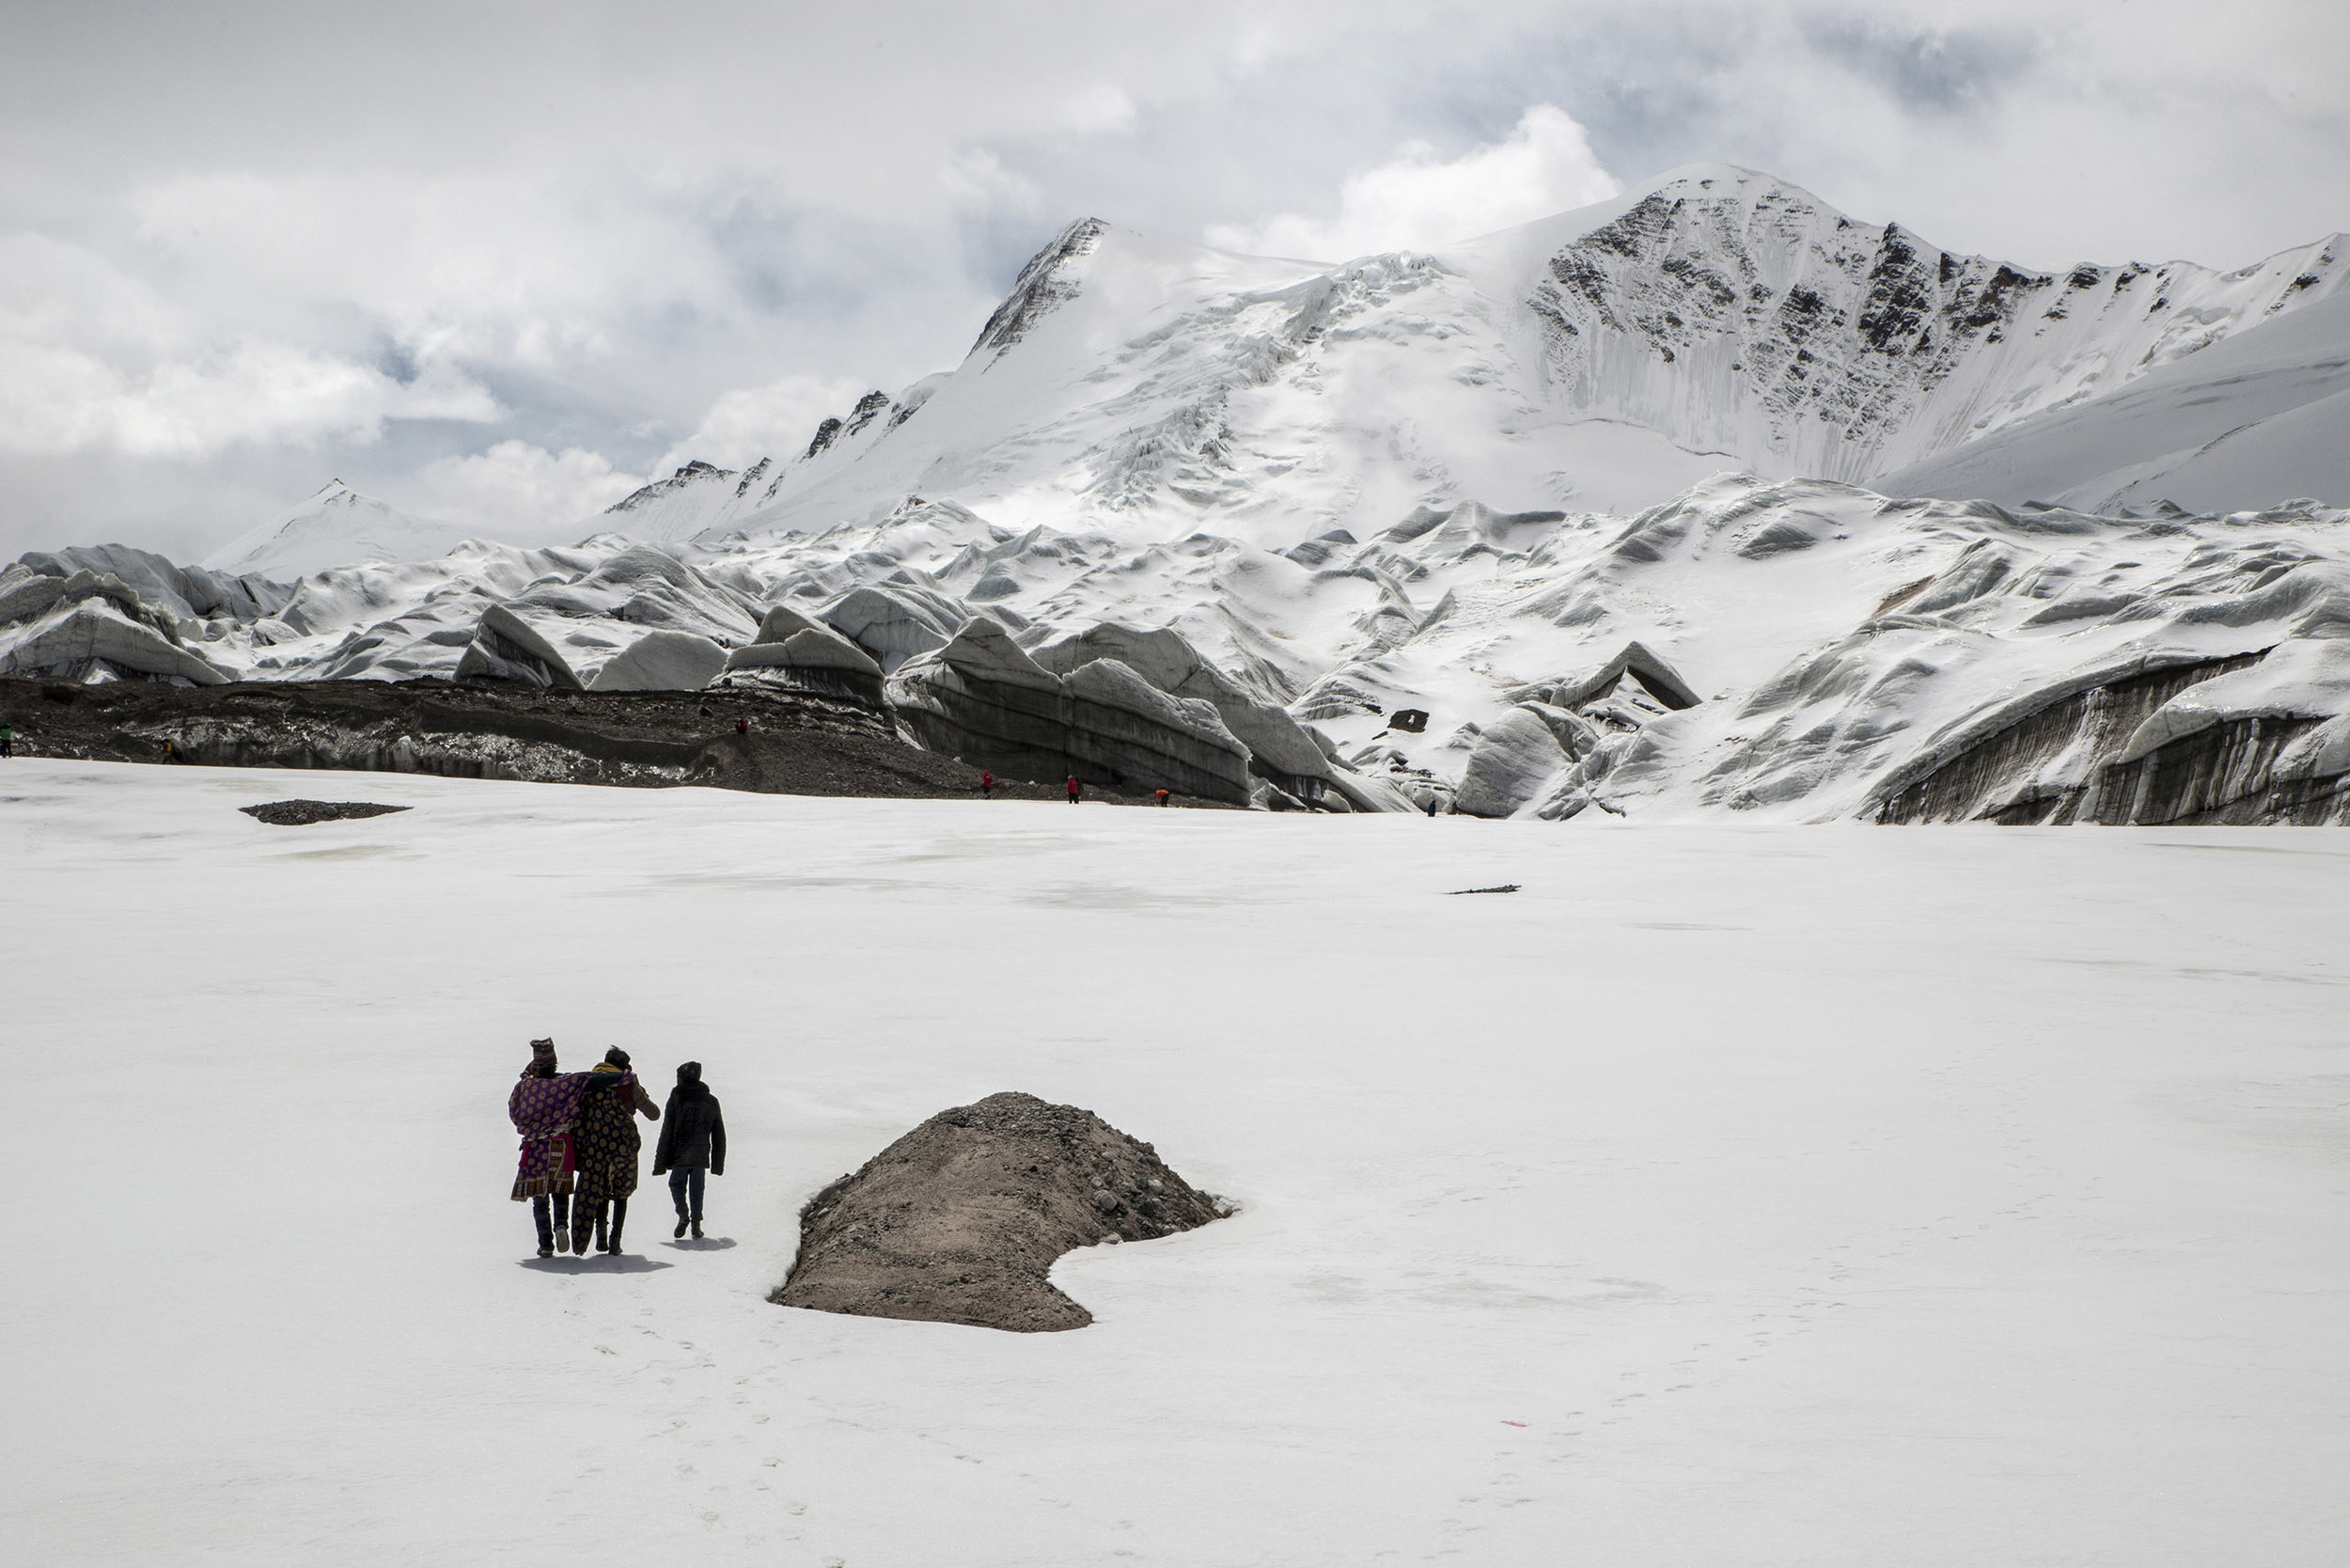 Young Tibetan nomads walking towards the Jianggendiru glacier source of the Yangtze river, in one of the most desolate and remote region of the Tibetan plateau. In large parts of the region, the Three Rivers Natural Reserve, grazing has been banned in the name of environmental protection while heavily polluting mining operations have been authorized.